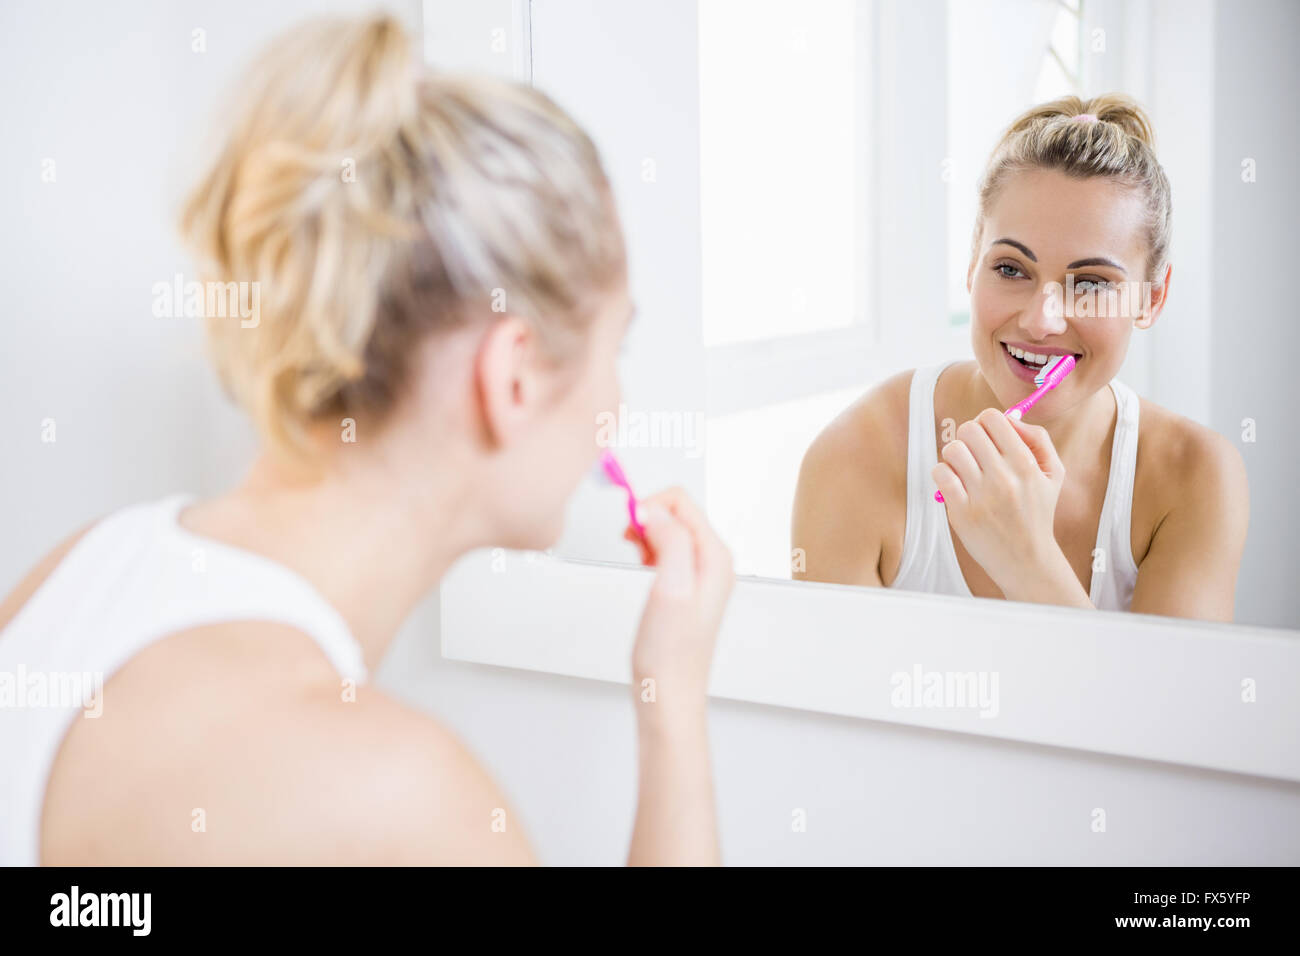 Young woman brushing teeth in bathroom - Stock Image